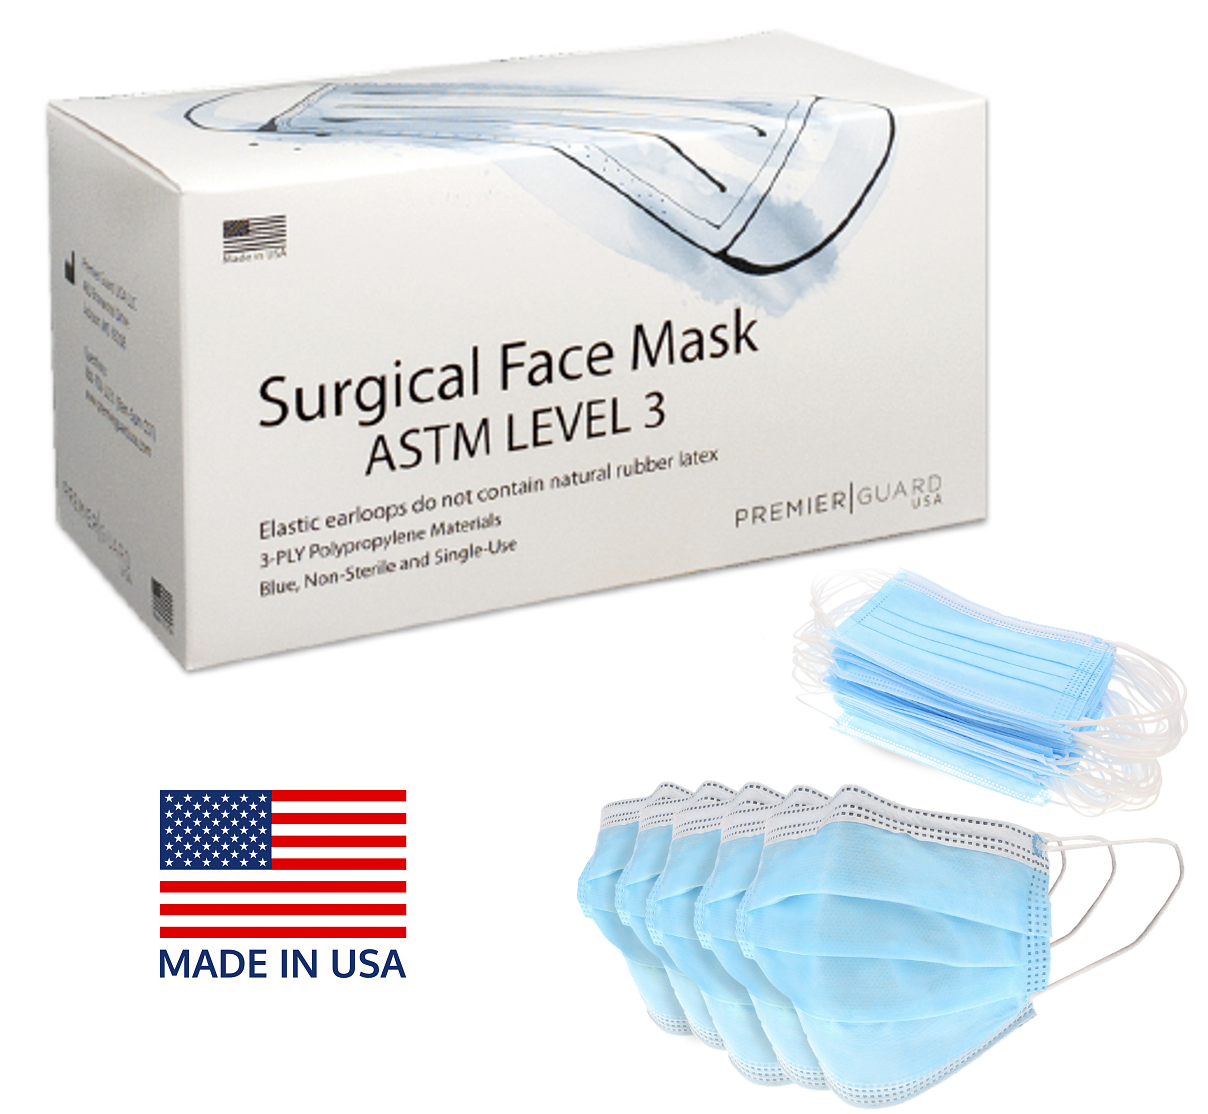 Surgical Face Mask – ASTM Level 3